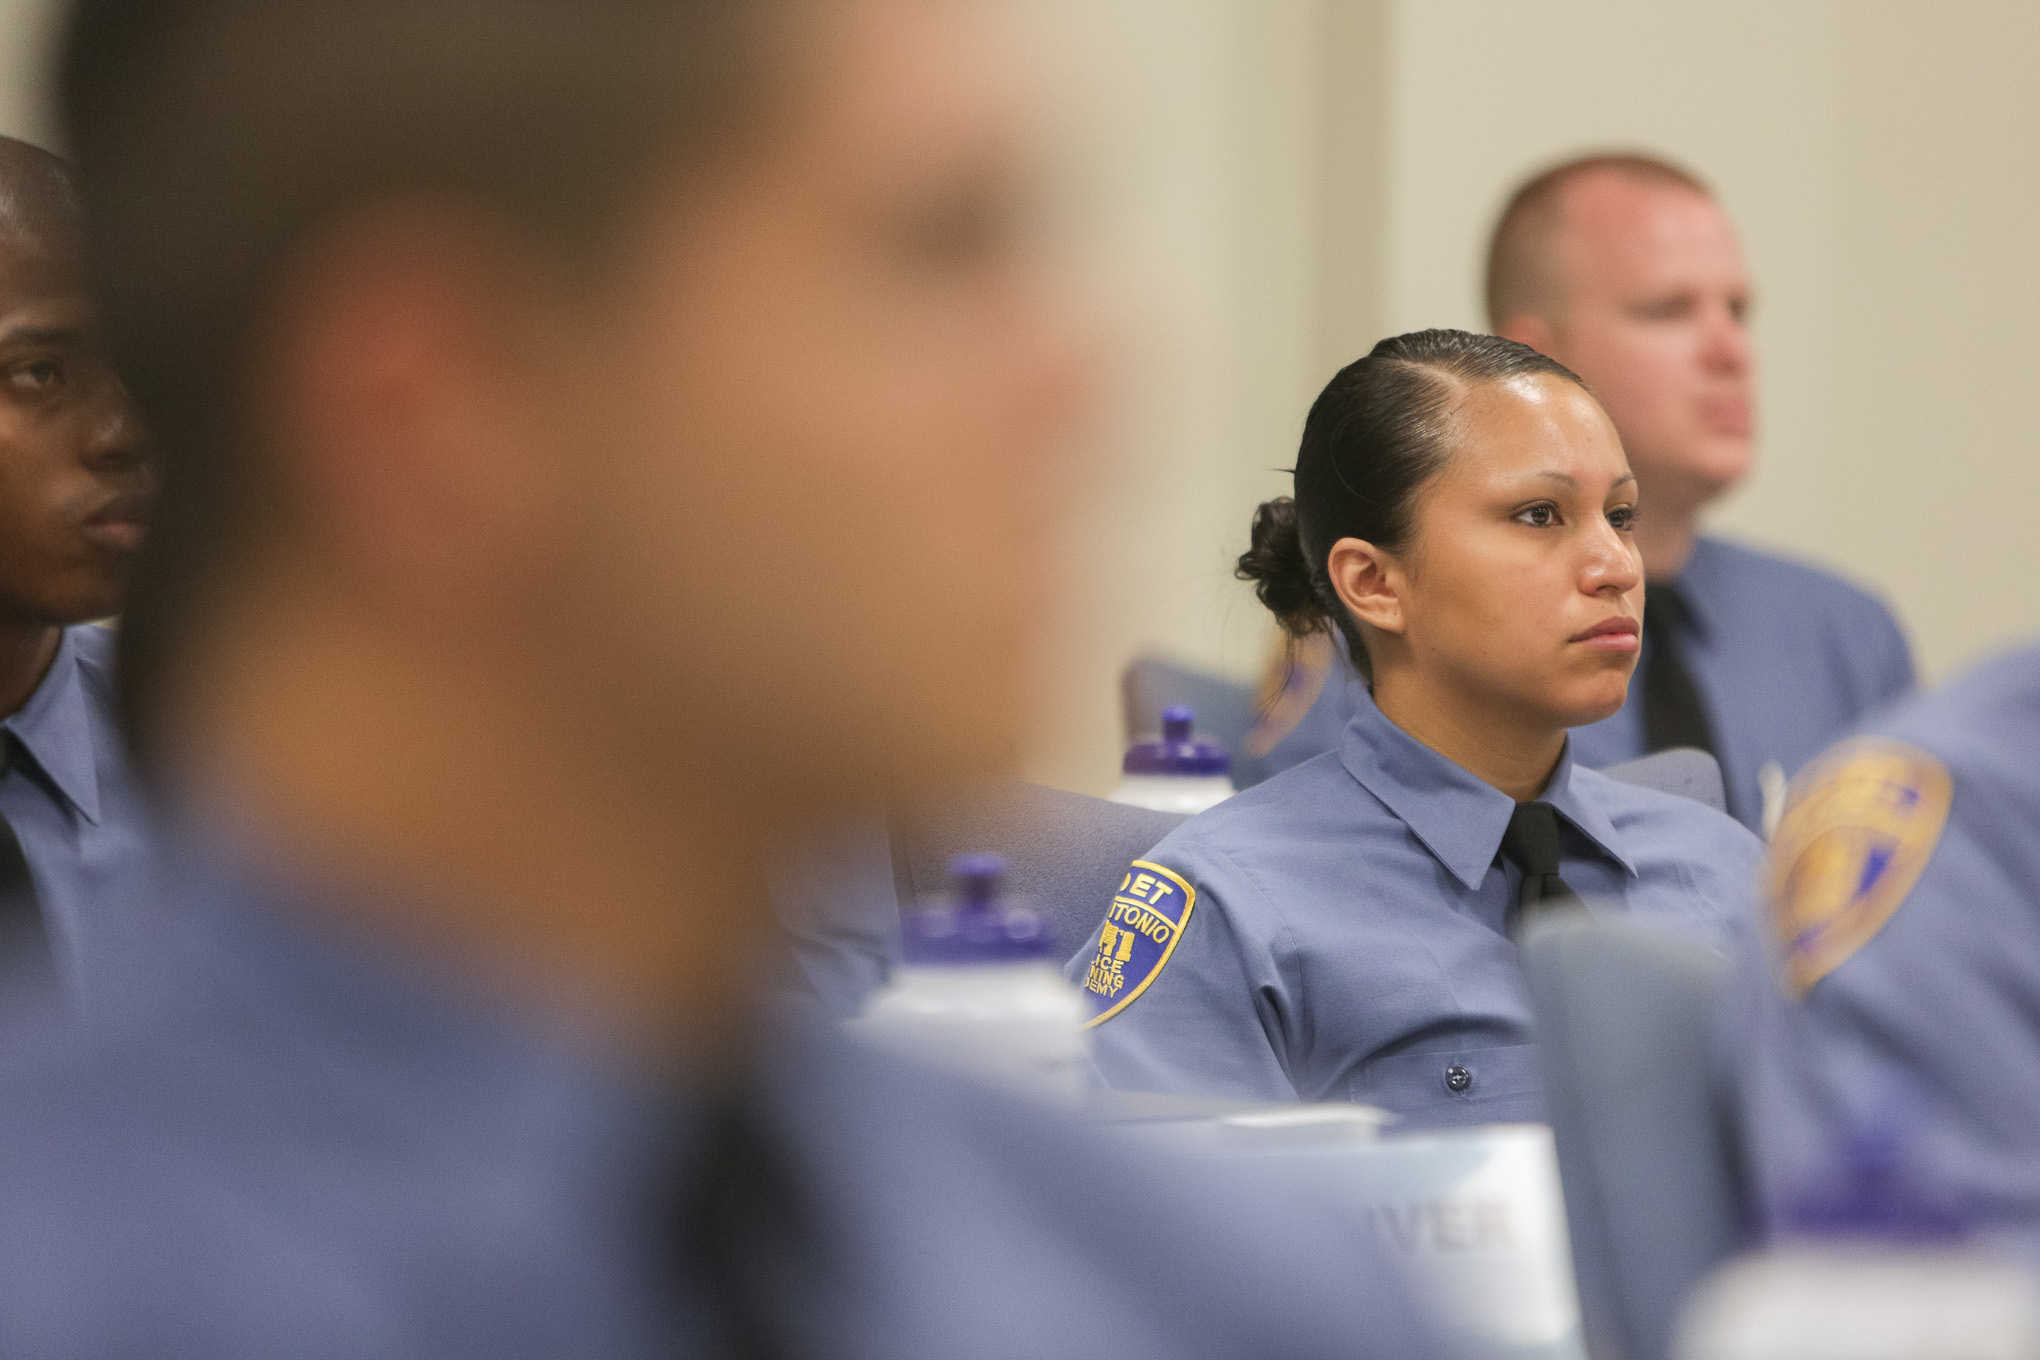 Out of the 50 cadets in attendance for their first day of training seven are women.